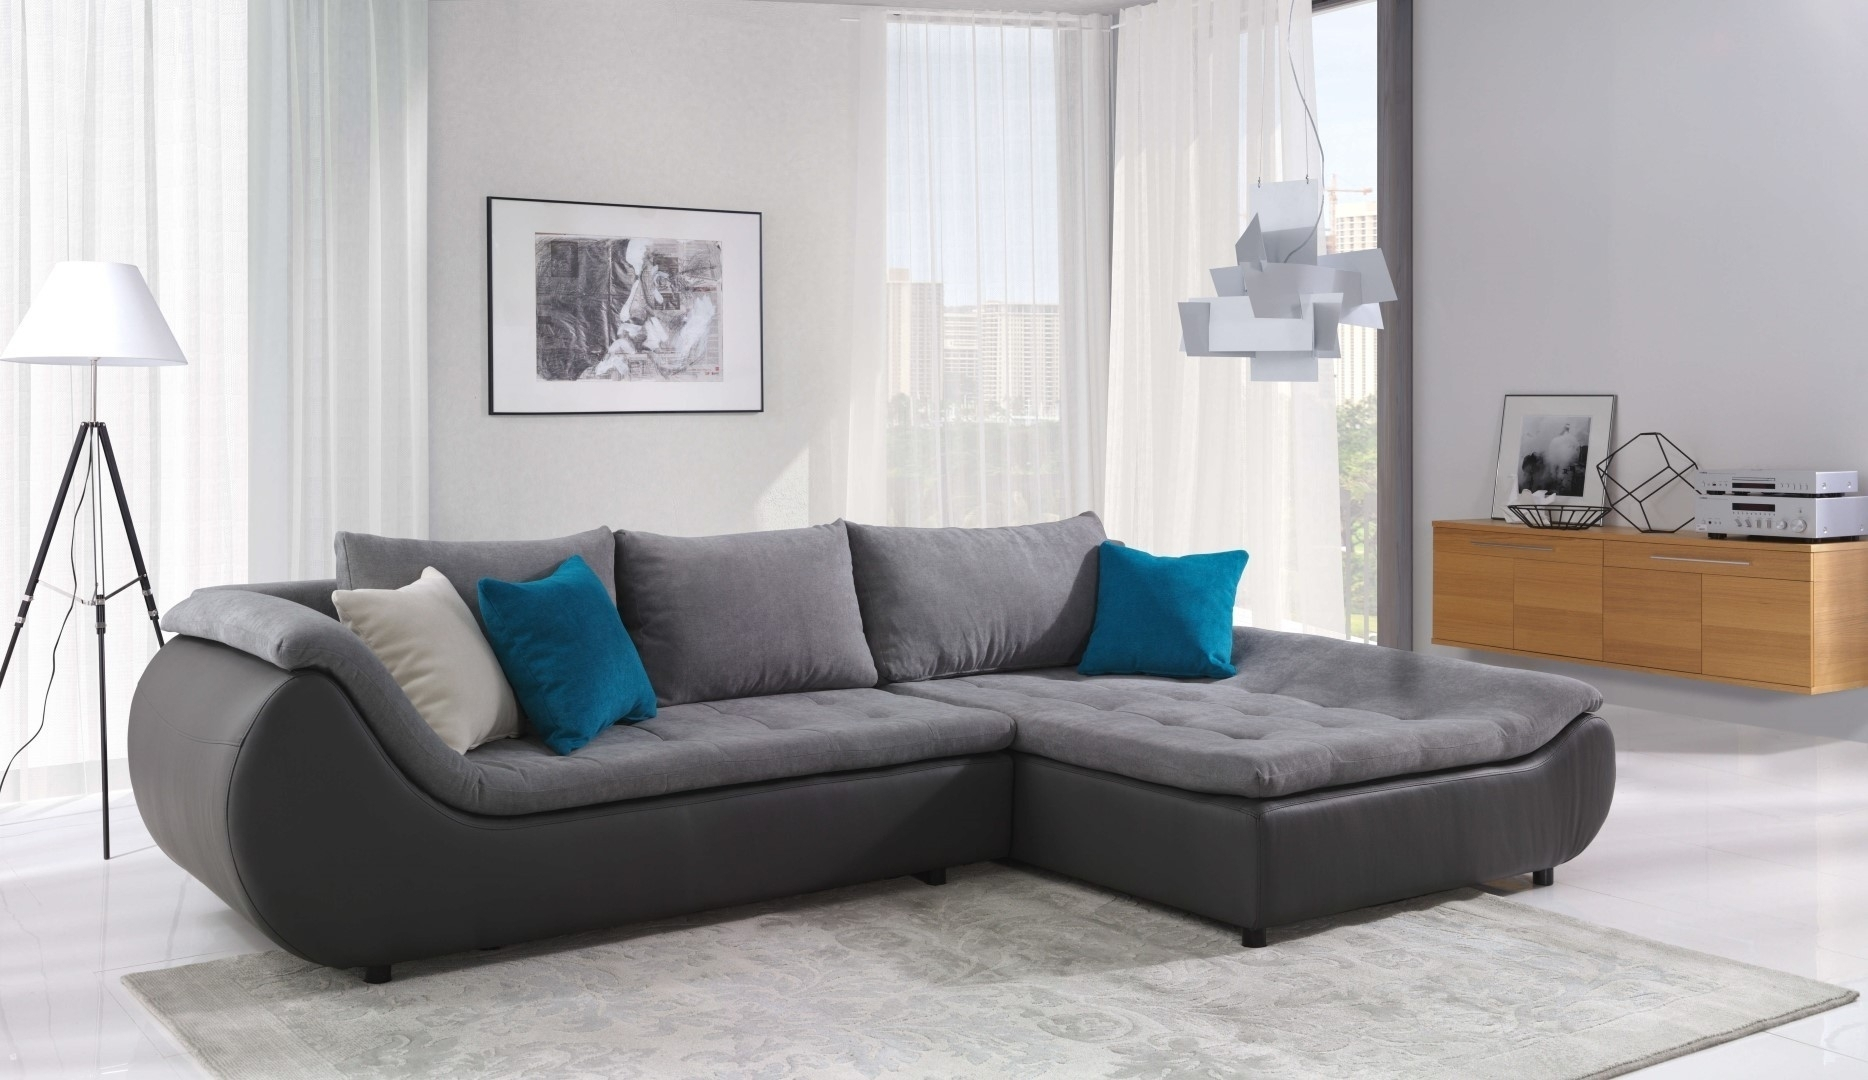 Collection Sectional Sofas Rochester Ny – Mediasupload With Rochester Ny Sectional Sofas (View 4 of 10)